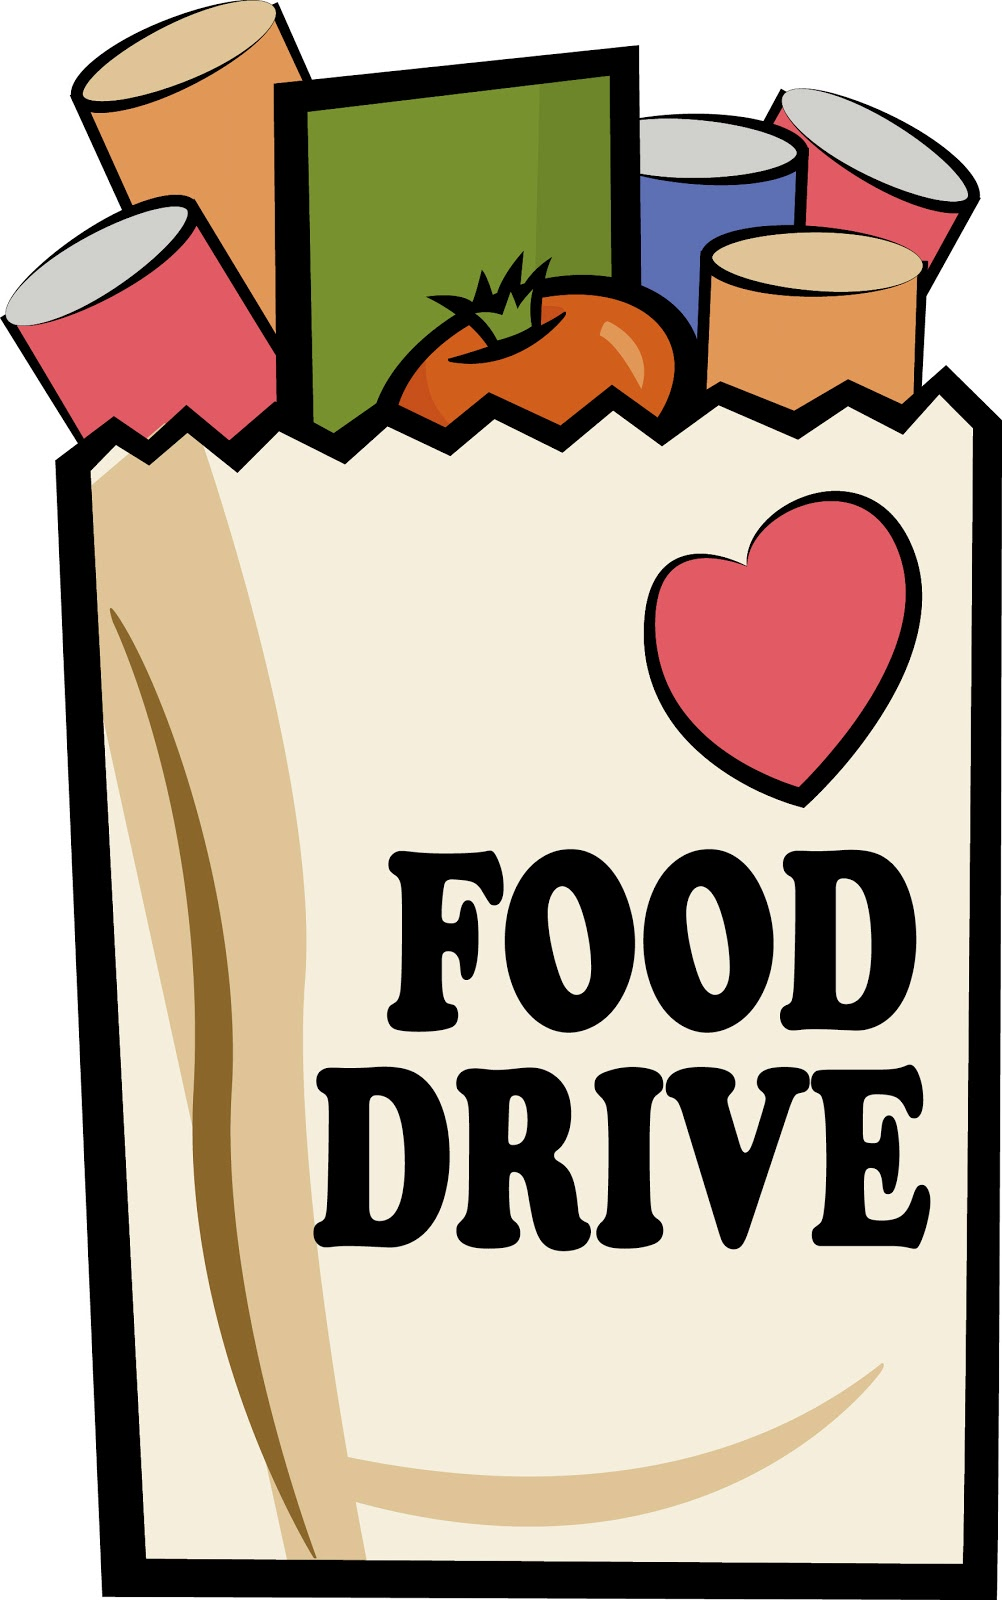 Food Drive Clipart.